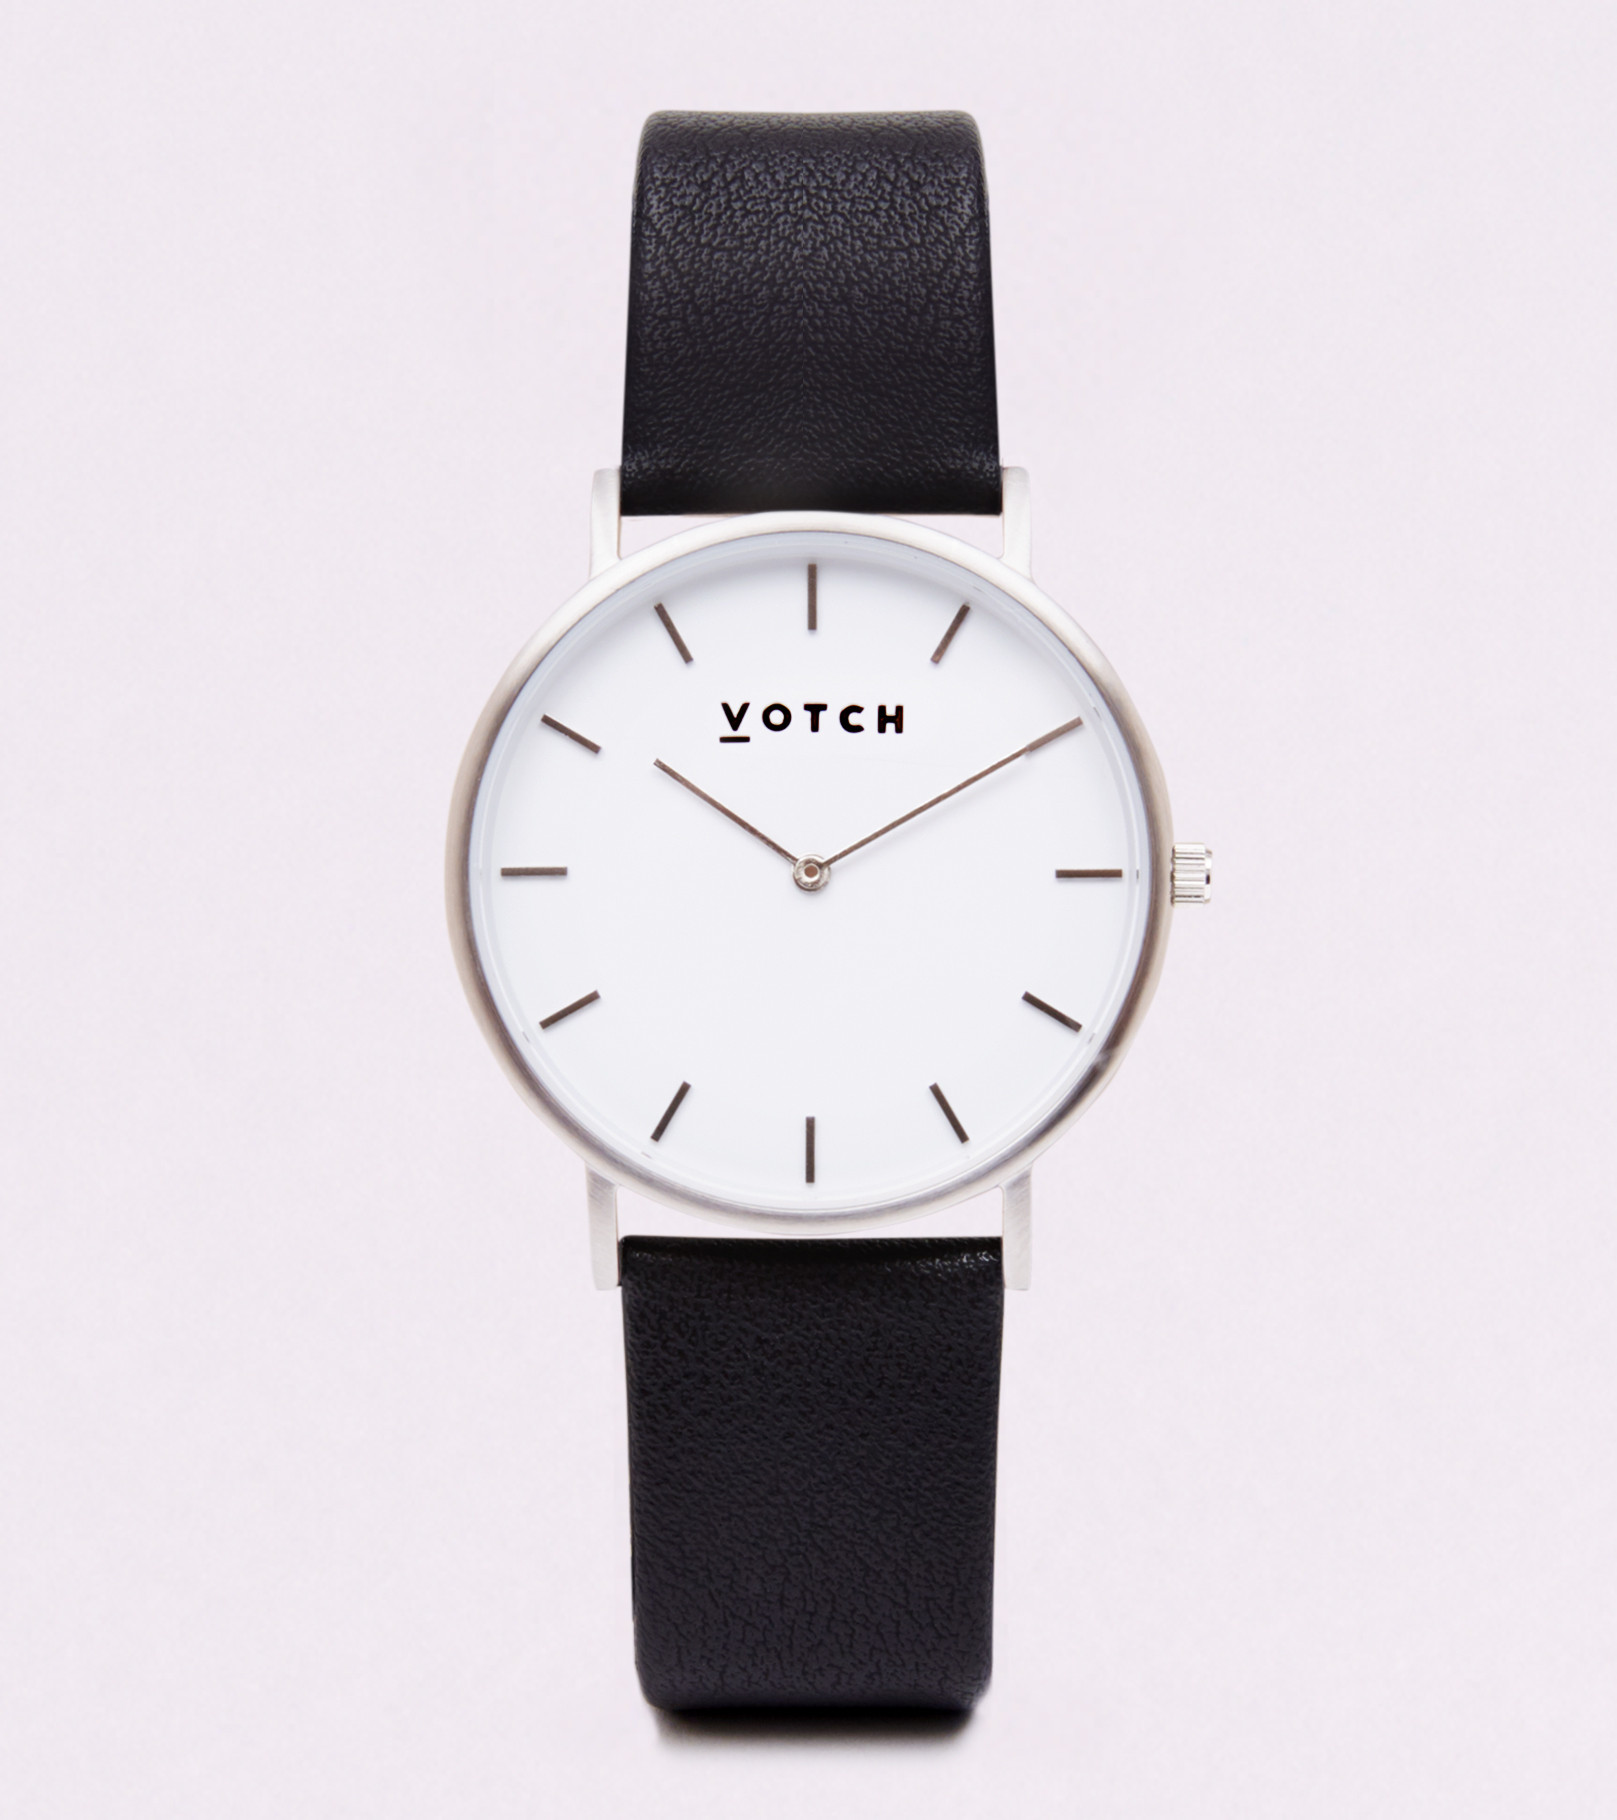 VOTCH   LIMITED EDITION - THE BLACK & SILVER  €141